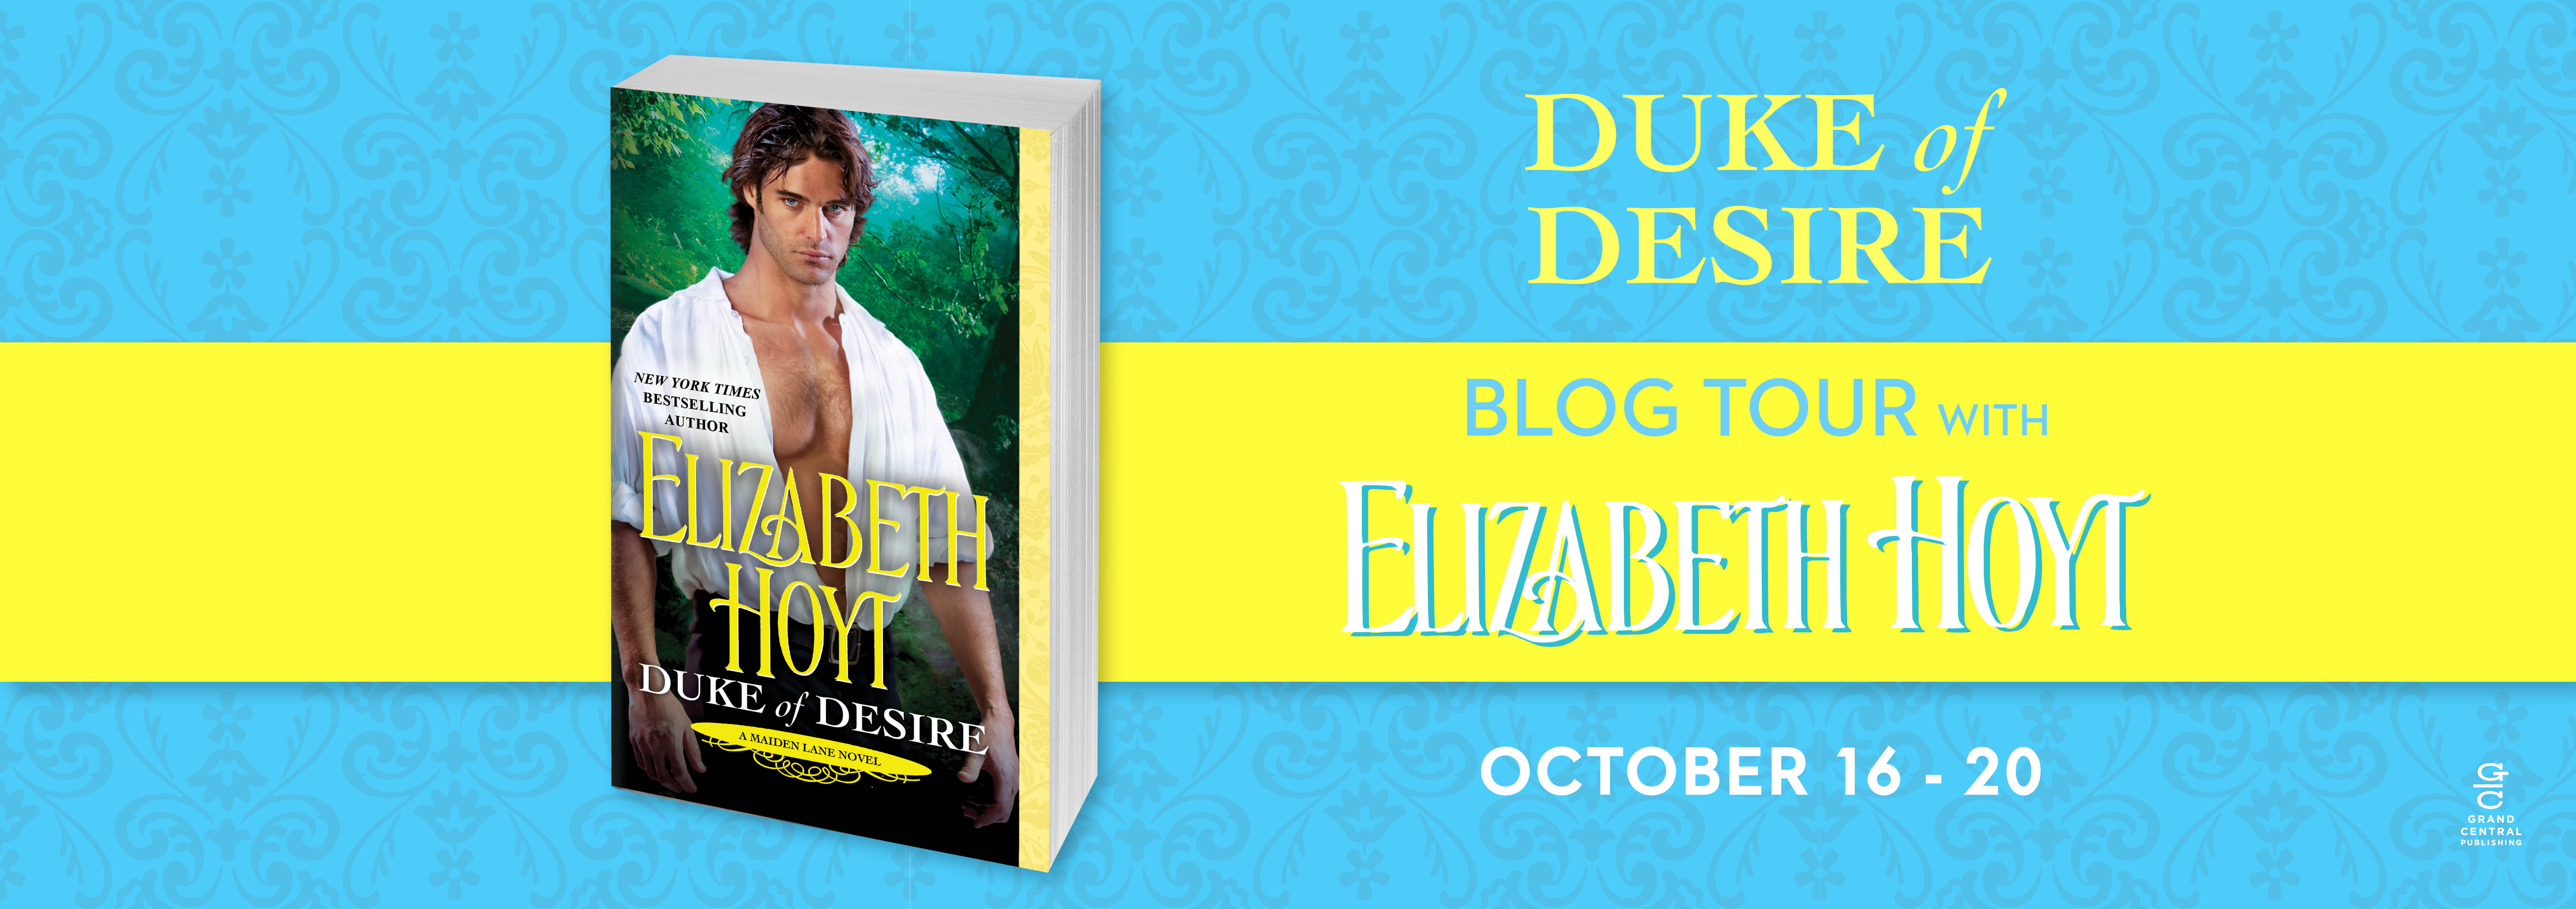 win 1 of 10 print copies of Duke of Desire: